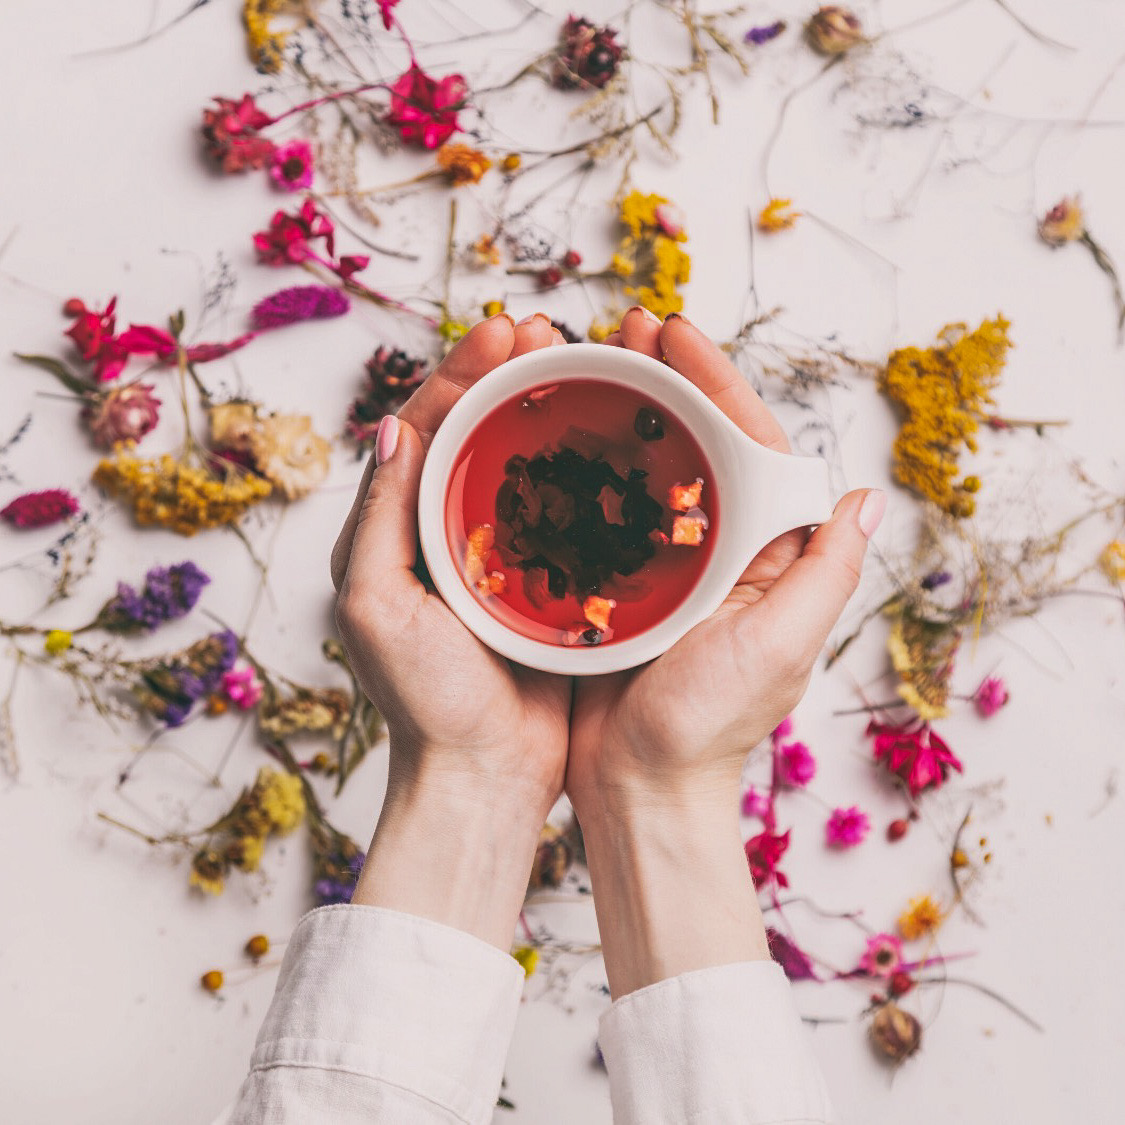 An image of a woman hands holding a cup of tea surrounded by dried flowers.